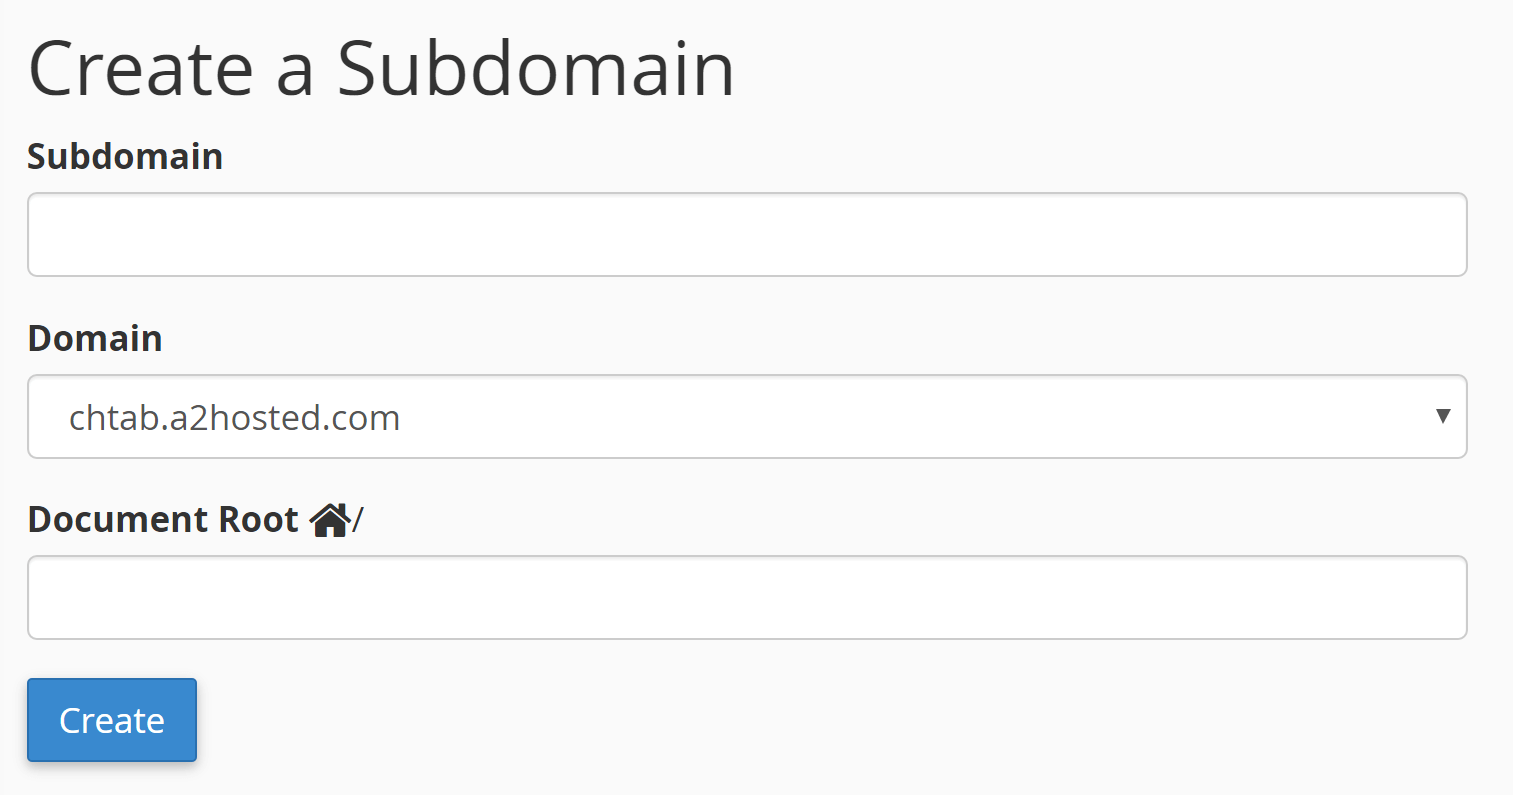 The settings for your subdomain.